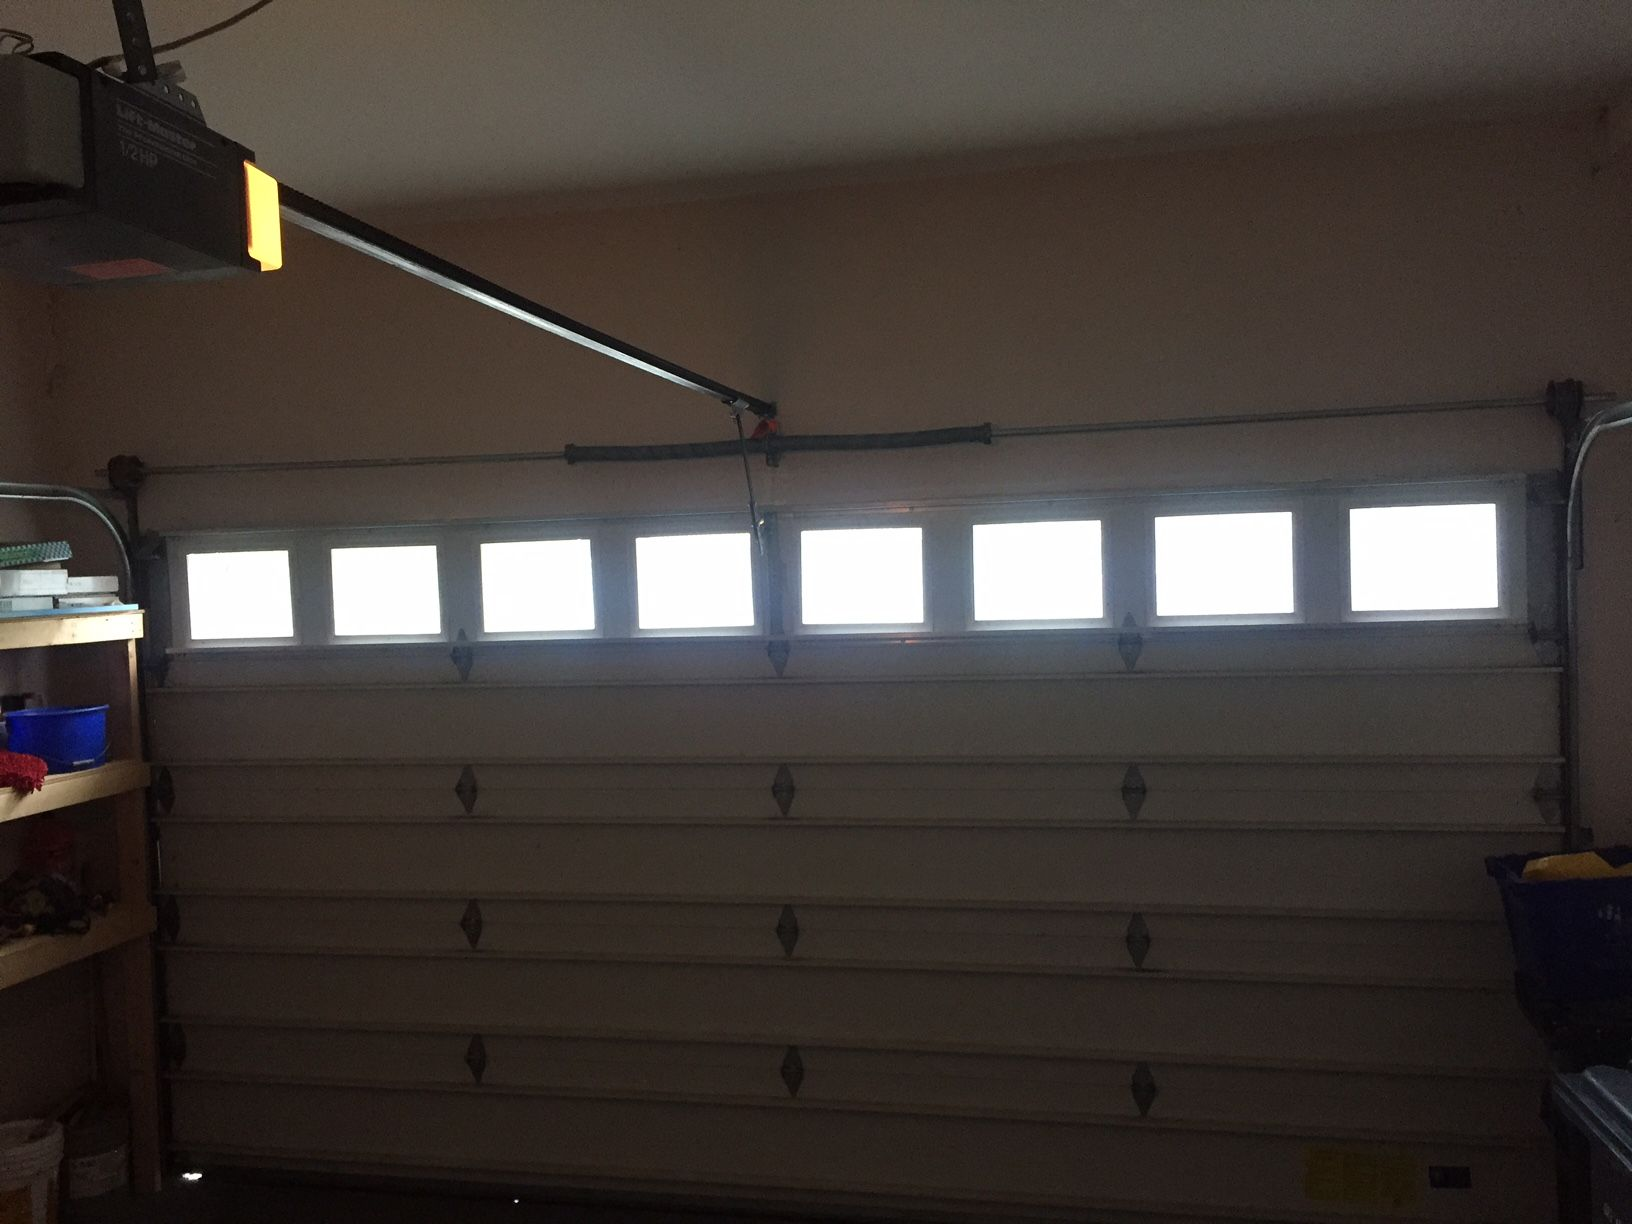 Top-Rated Garage Door Repair in Coquitlam Since 2005 - Get your Garage Fixed Today! & Pin by Canadian Garage Door Repair Coquitlam on Canadian Garage Door ...